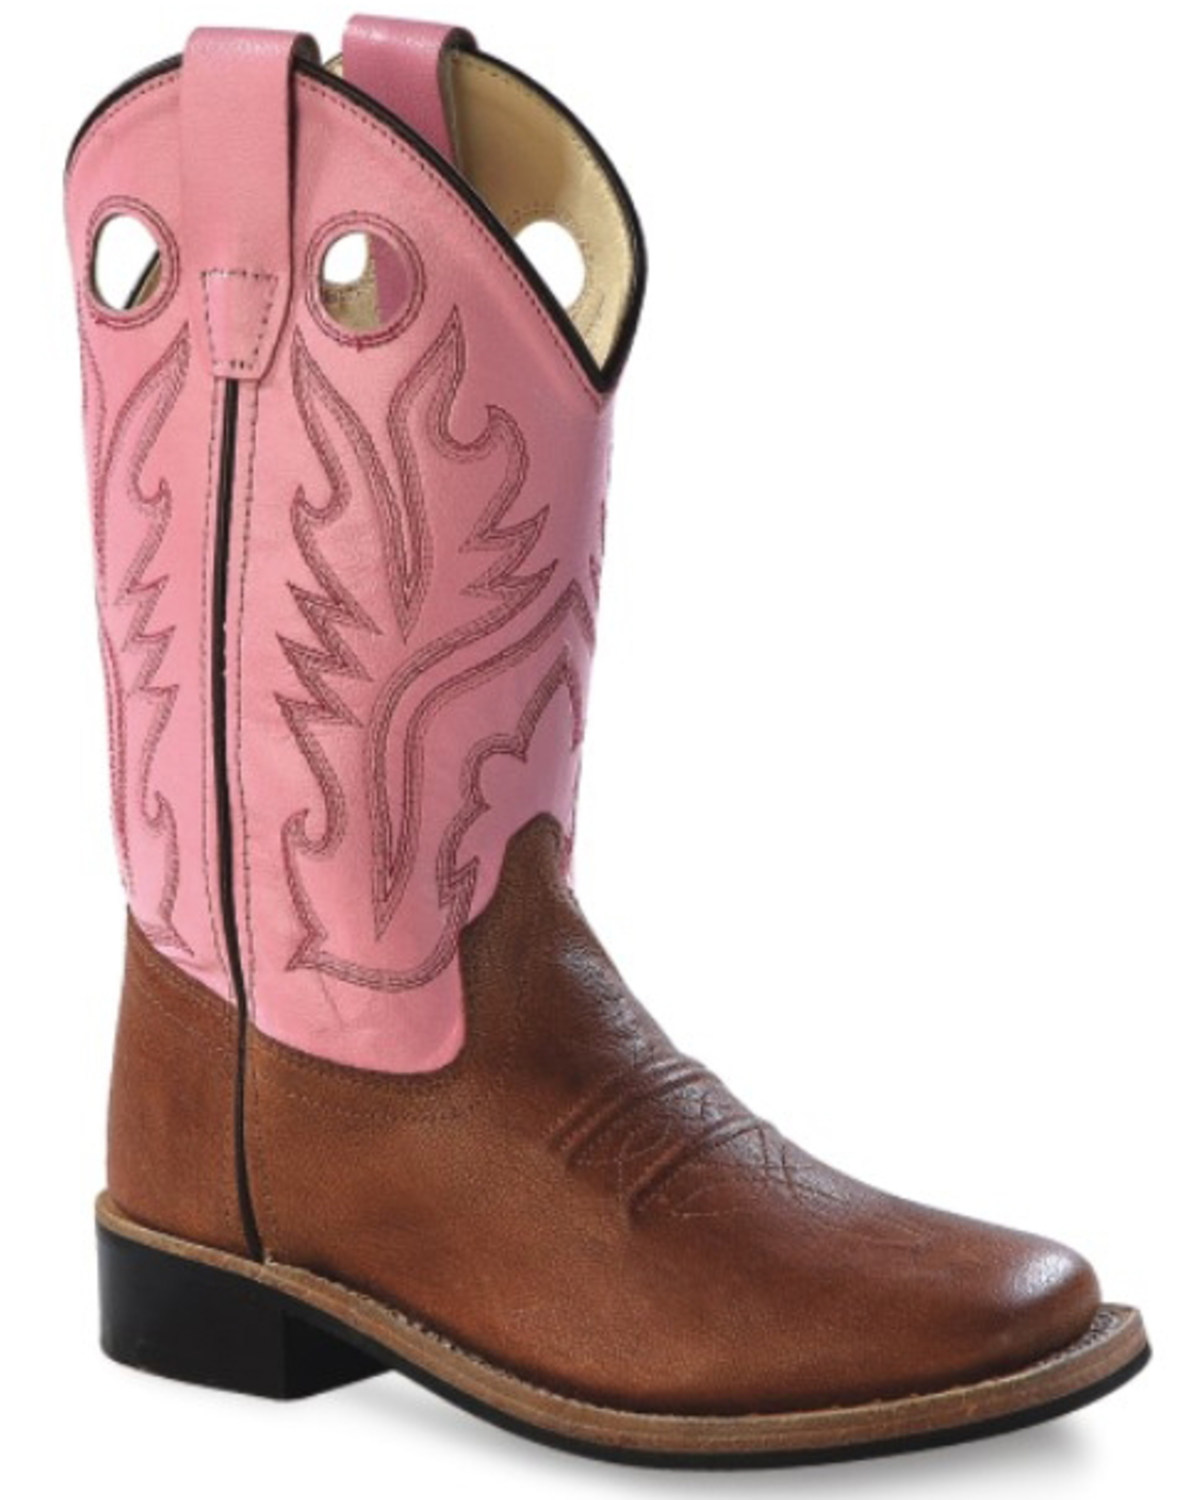 youth girls cowboy boots